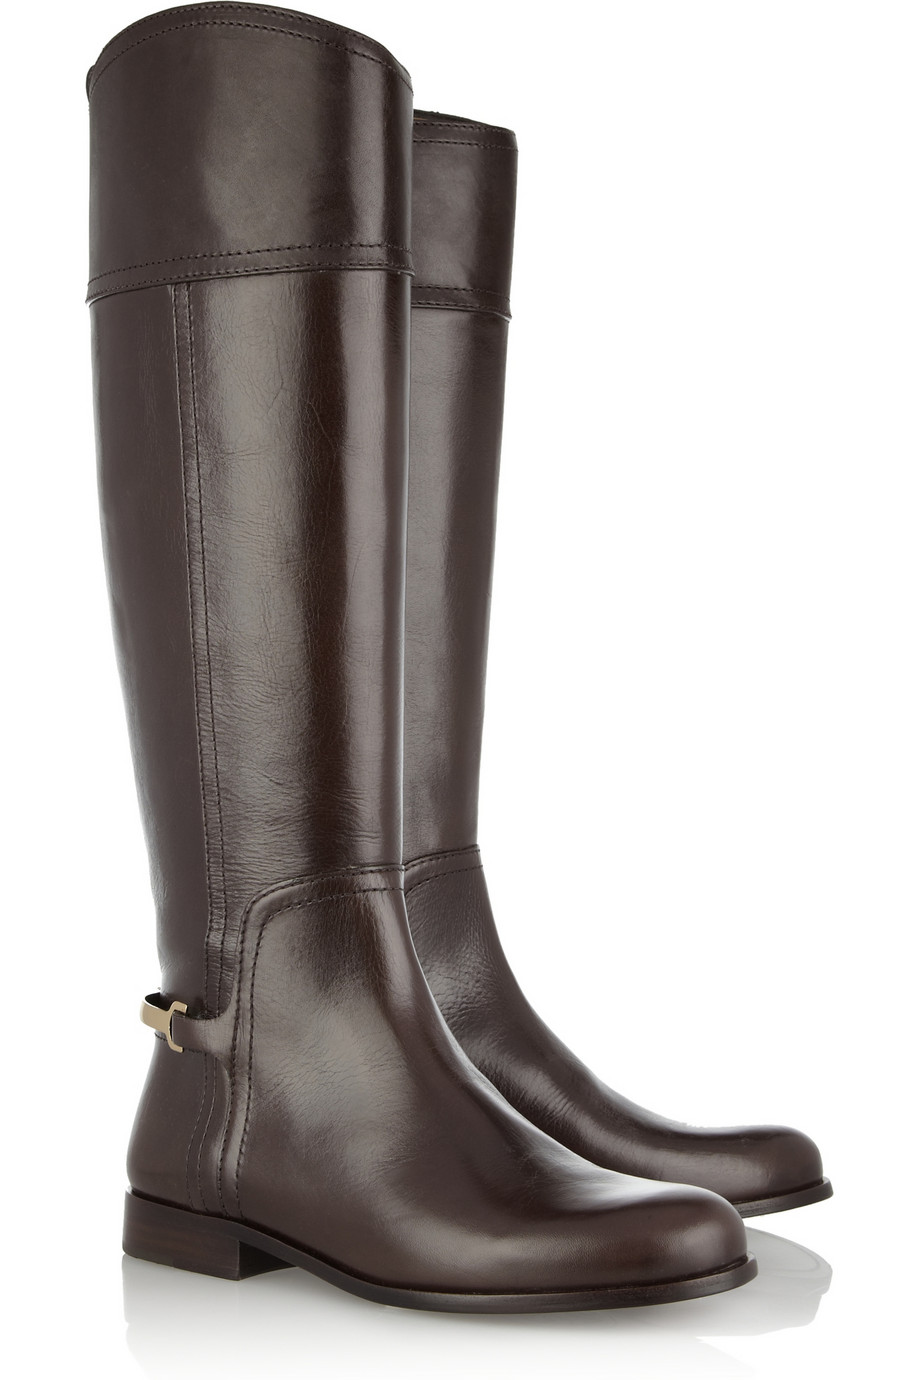 burch jess leather boots in brown coconut lyst